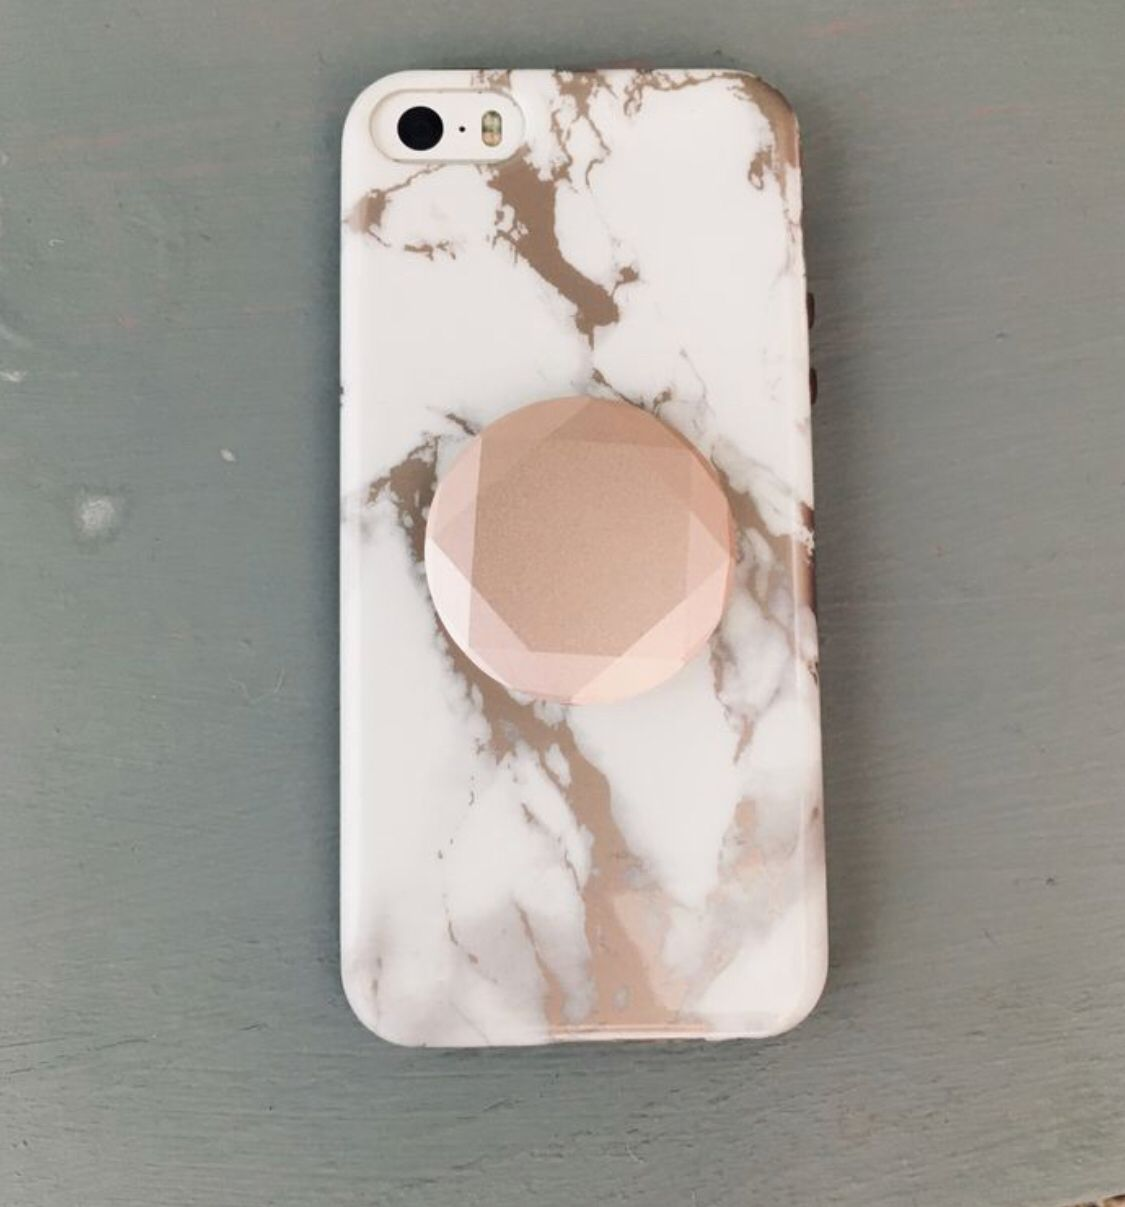 Pin By Sophia Mancia On Your Pinterest Likes Beautiful Iphone Case Pretty Phone Cases Marble Phone Case Iphone